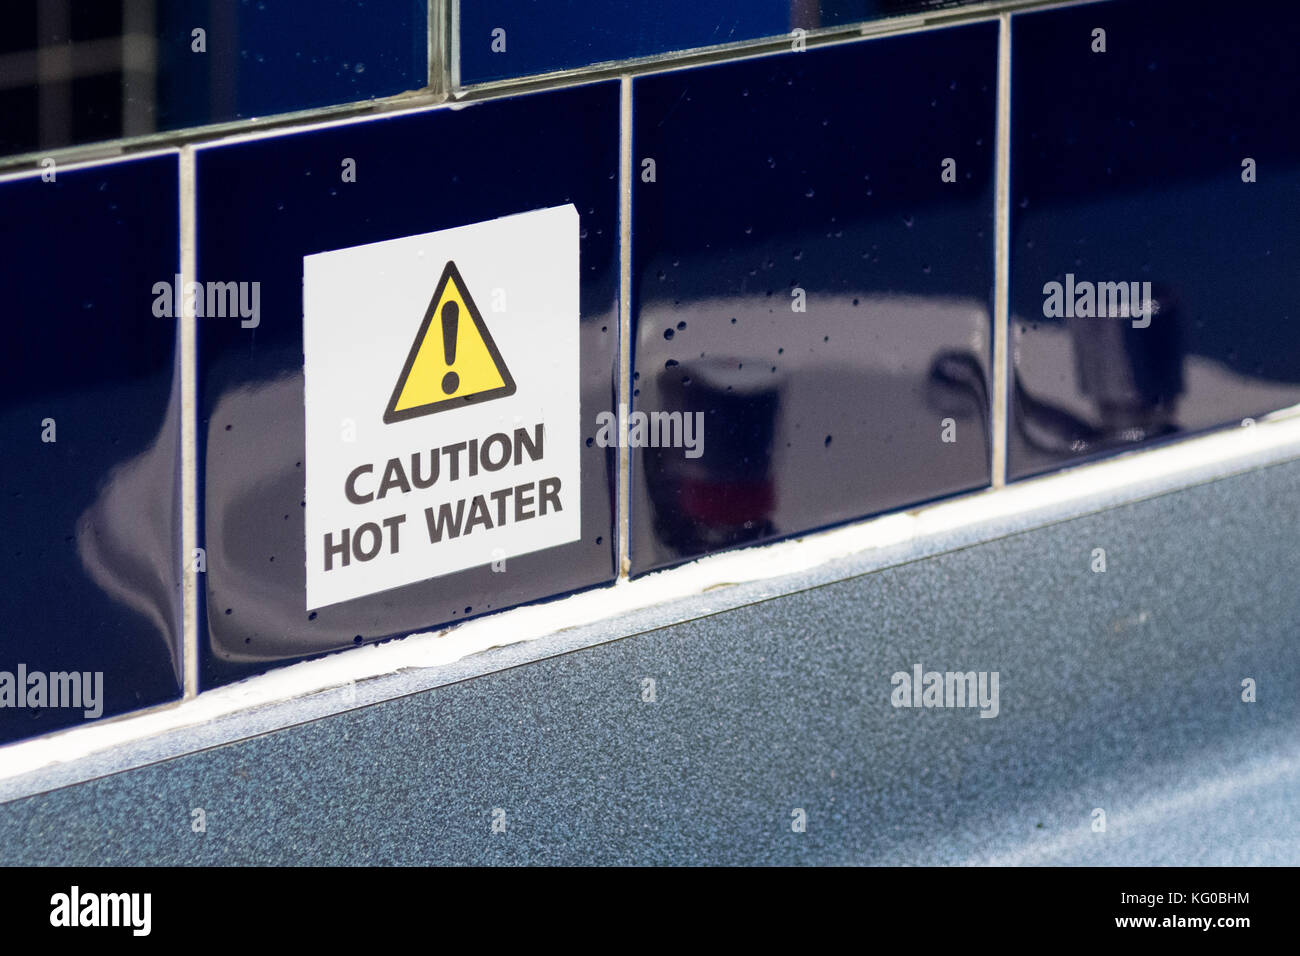 caution hot water sign - Stock Image